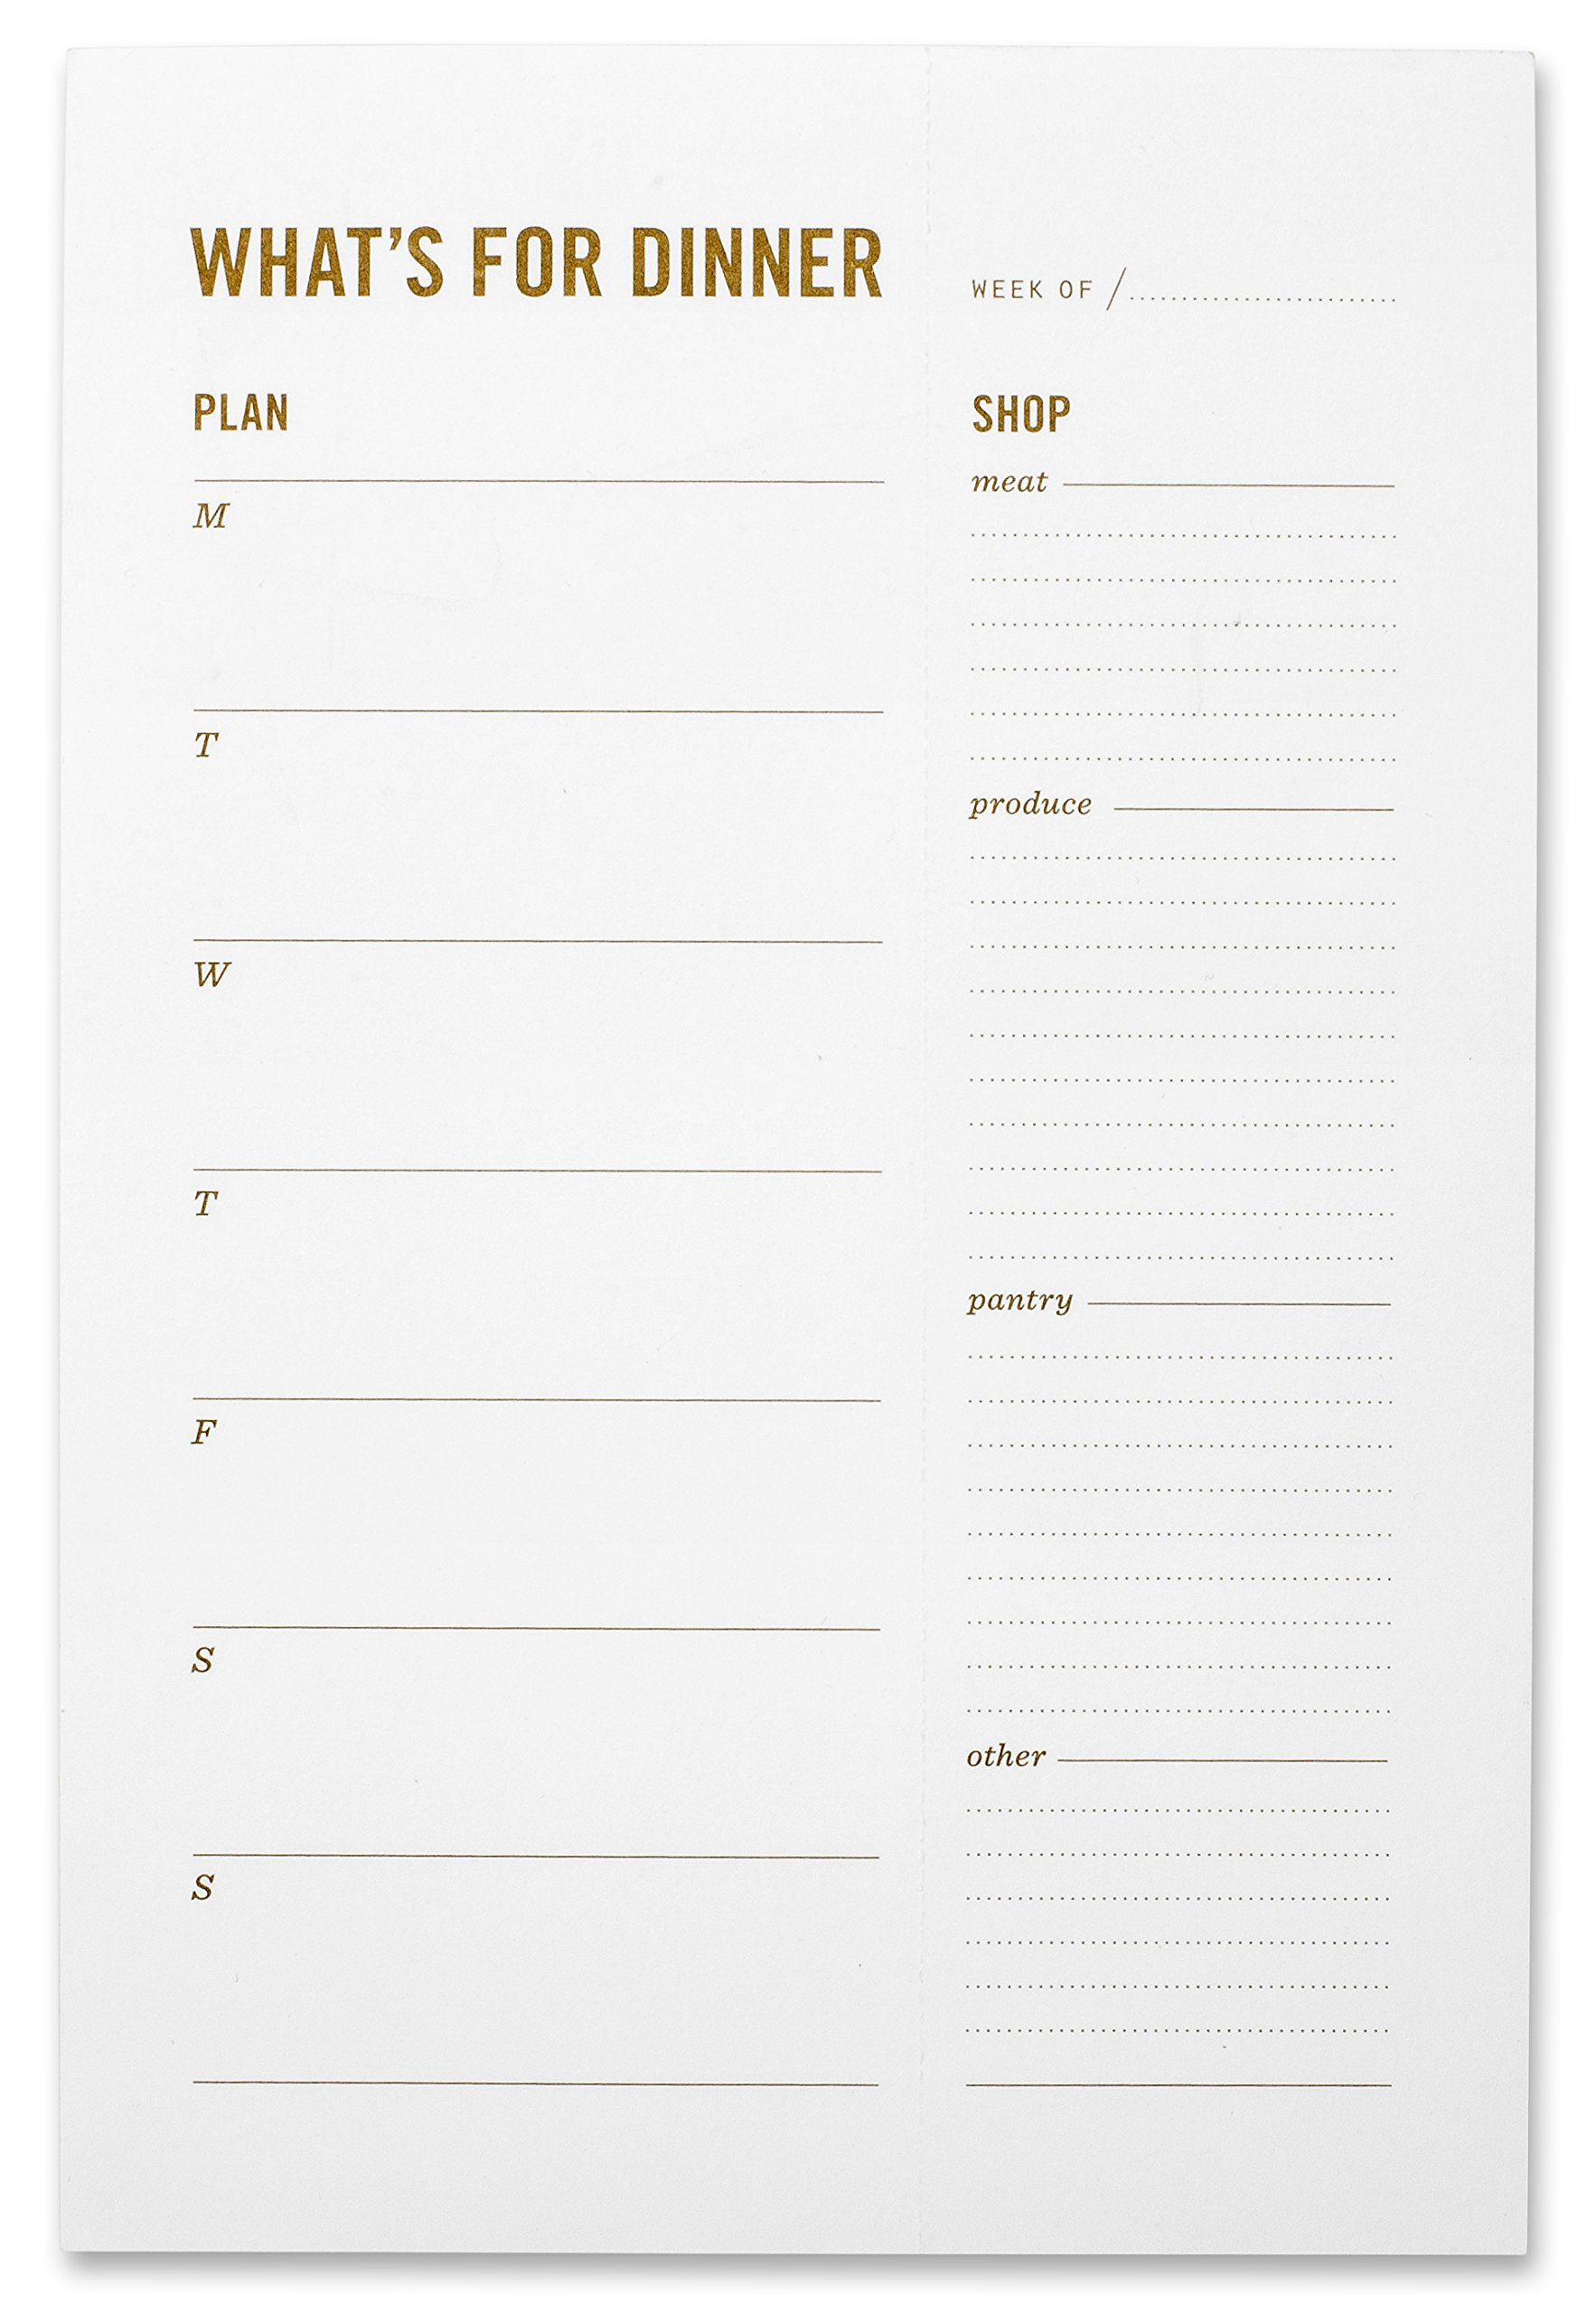 What's for Dinner Magnetic Meal Planning Grocery List Notepad - Weekly Family Meal Planner with Perforated, Tear Off Food Shopping List & Fridge Magnet - 6 x 9''